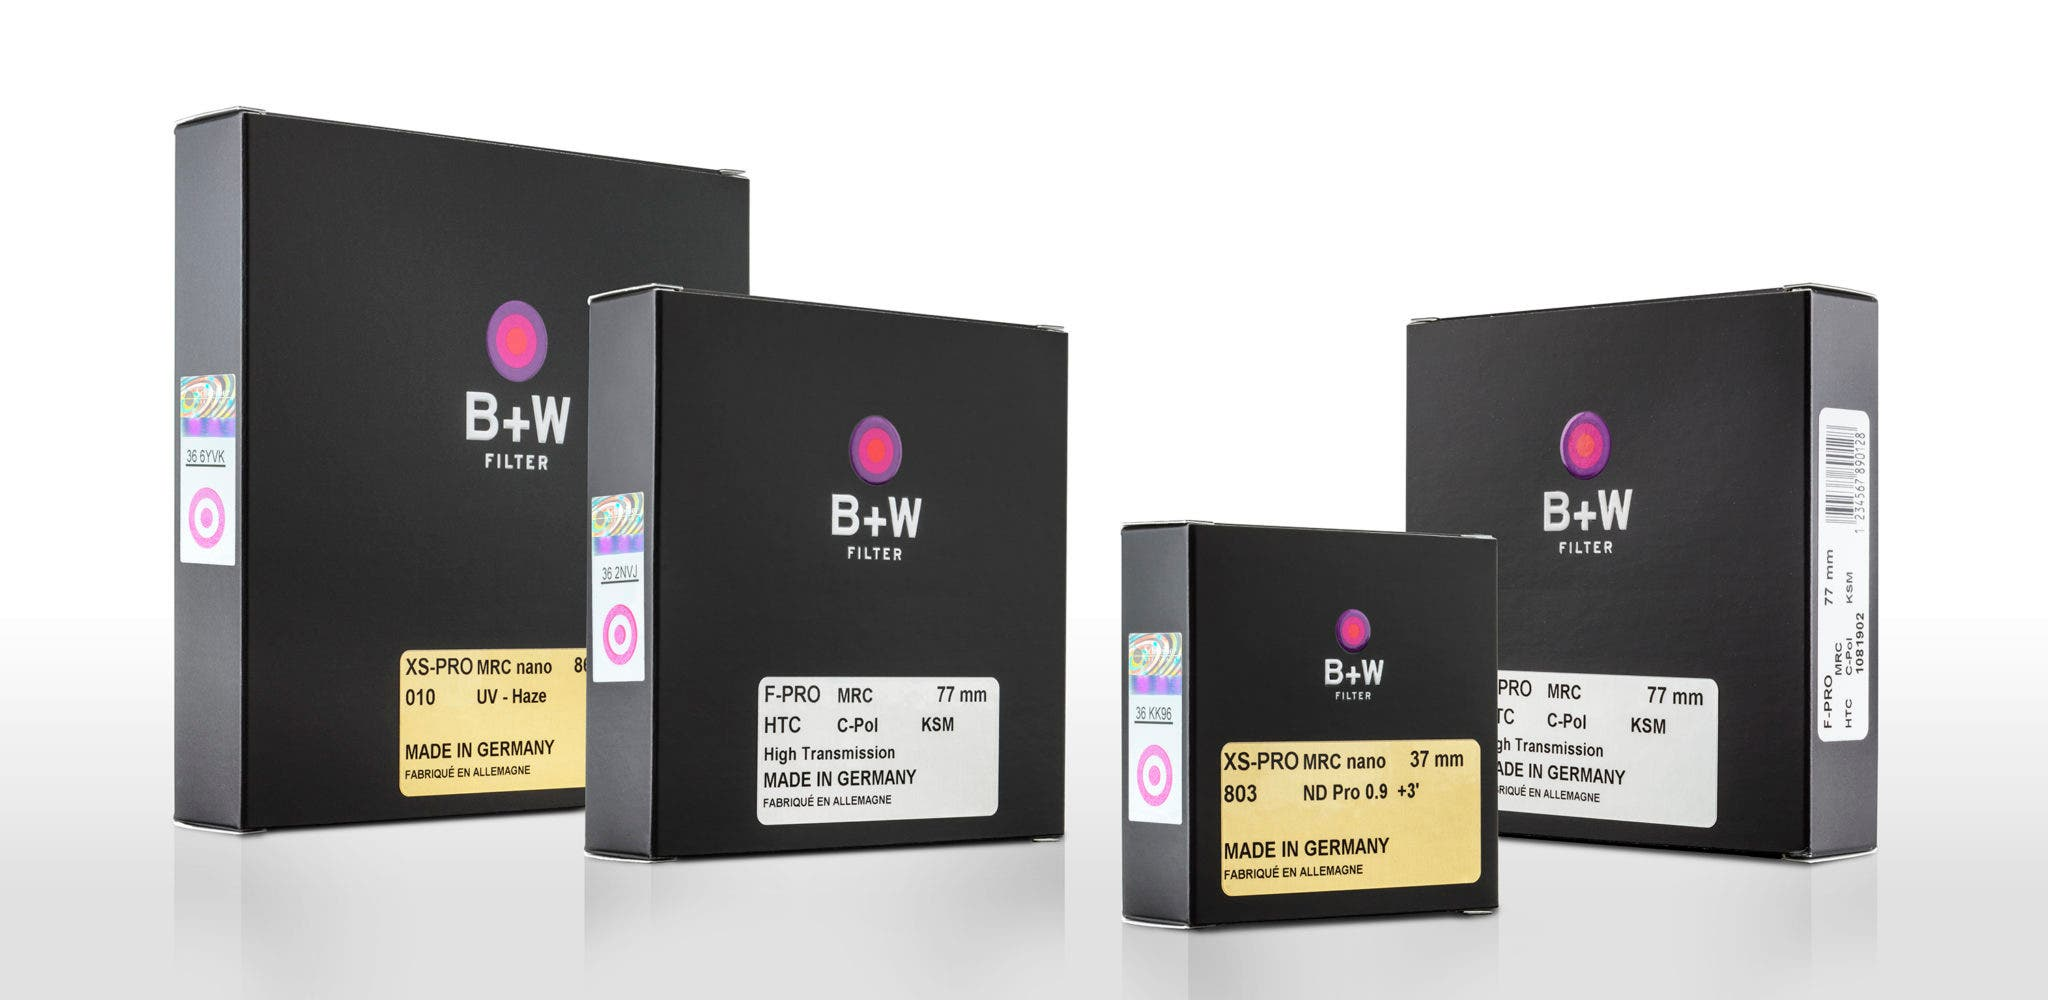 B+W Filters is Showing off Their New Packaging at Photokina